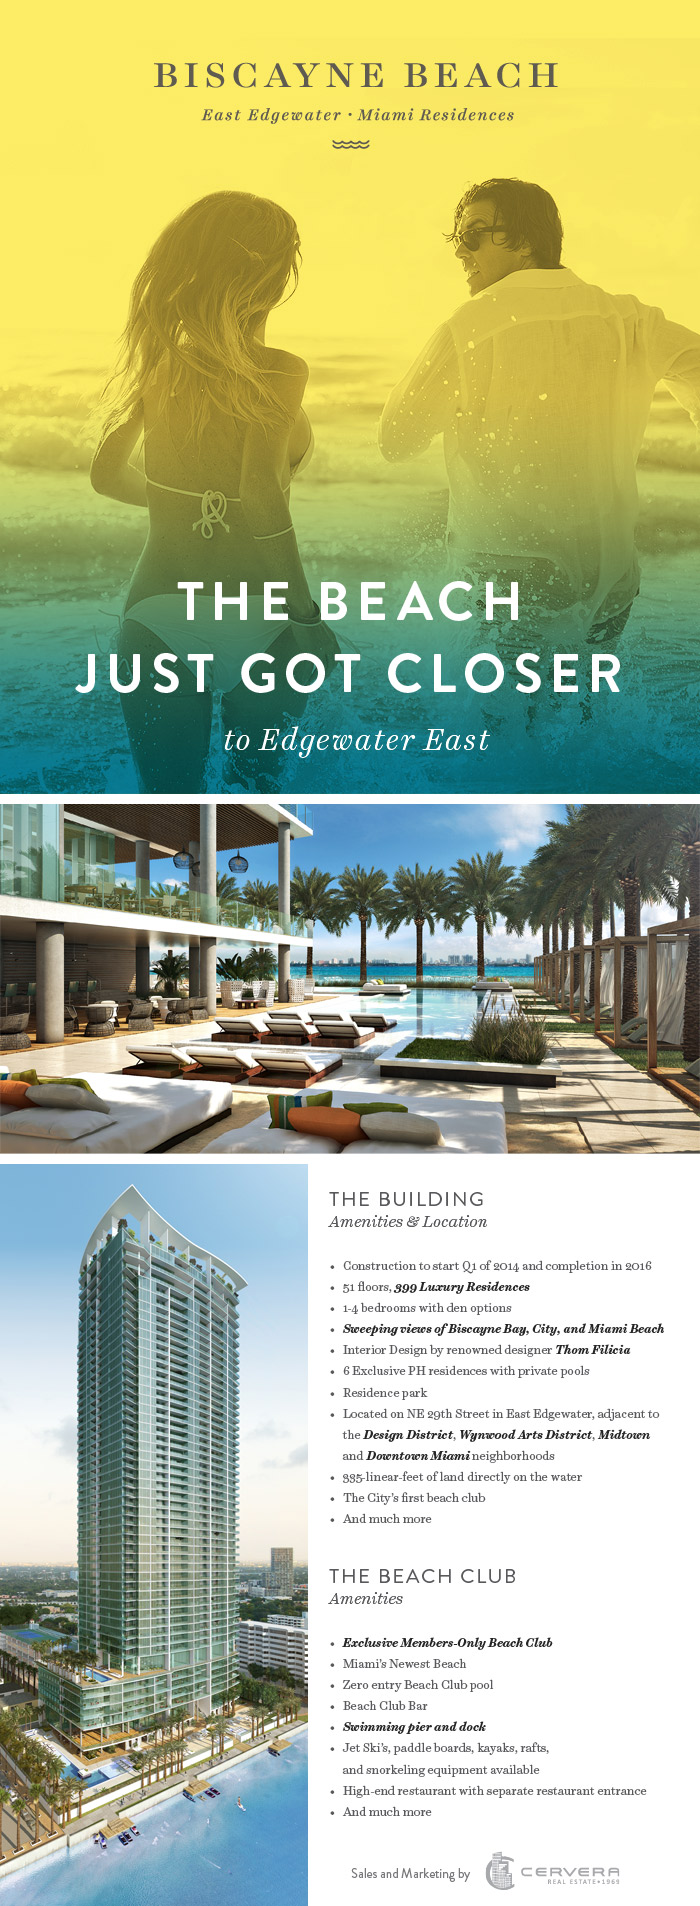 Introducing Biscayne Beach, a sophisticated, amenity-rich waterfront development in East Edgewater, Miami's hottest emerging neighborhood